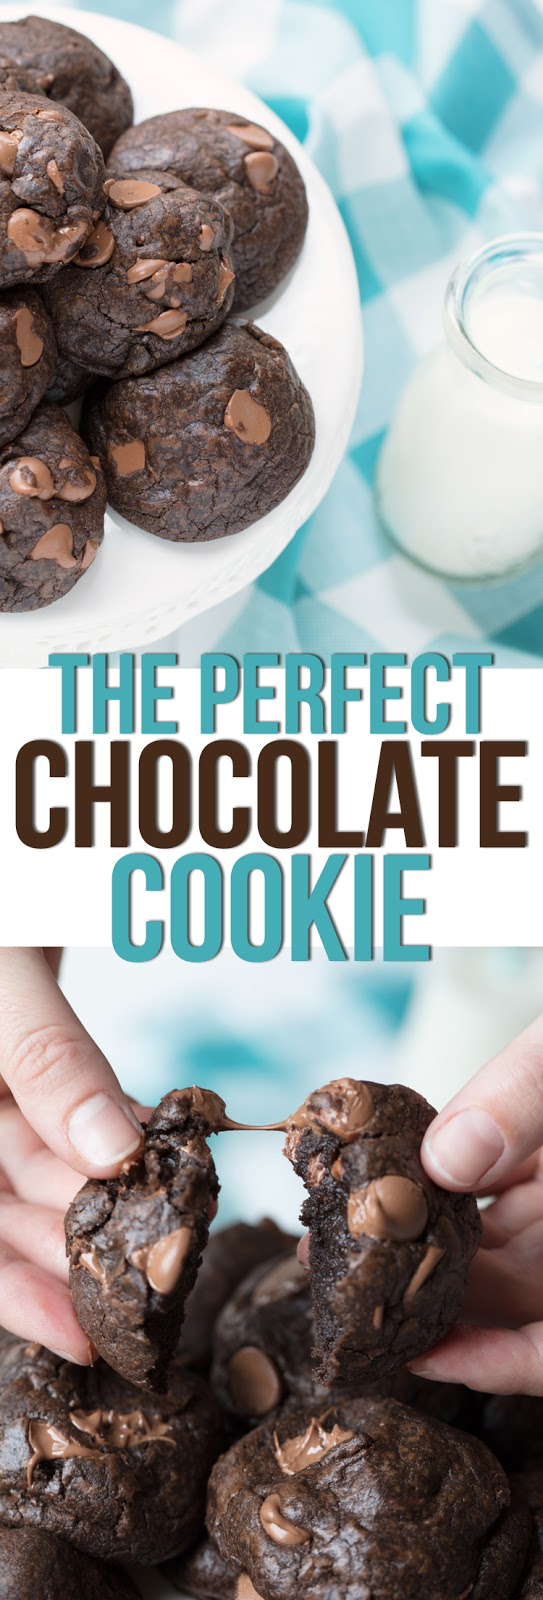 This is THE best chocolate cookie recipe. It makes cookies that are soft, thick, chewy and packed with decadent chocolate flavor. The best cookie recipe of all time!